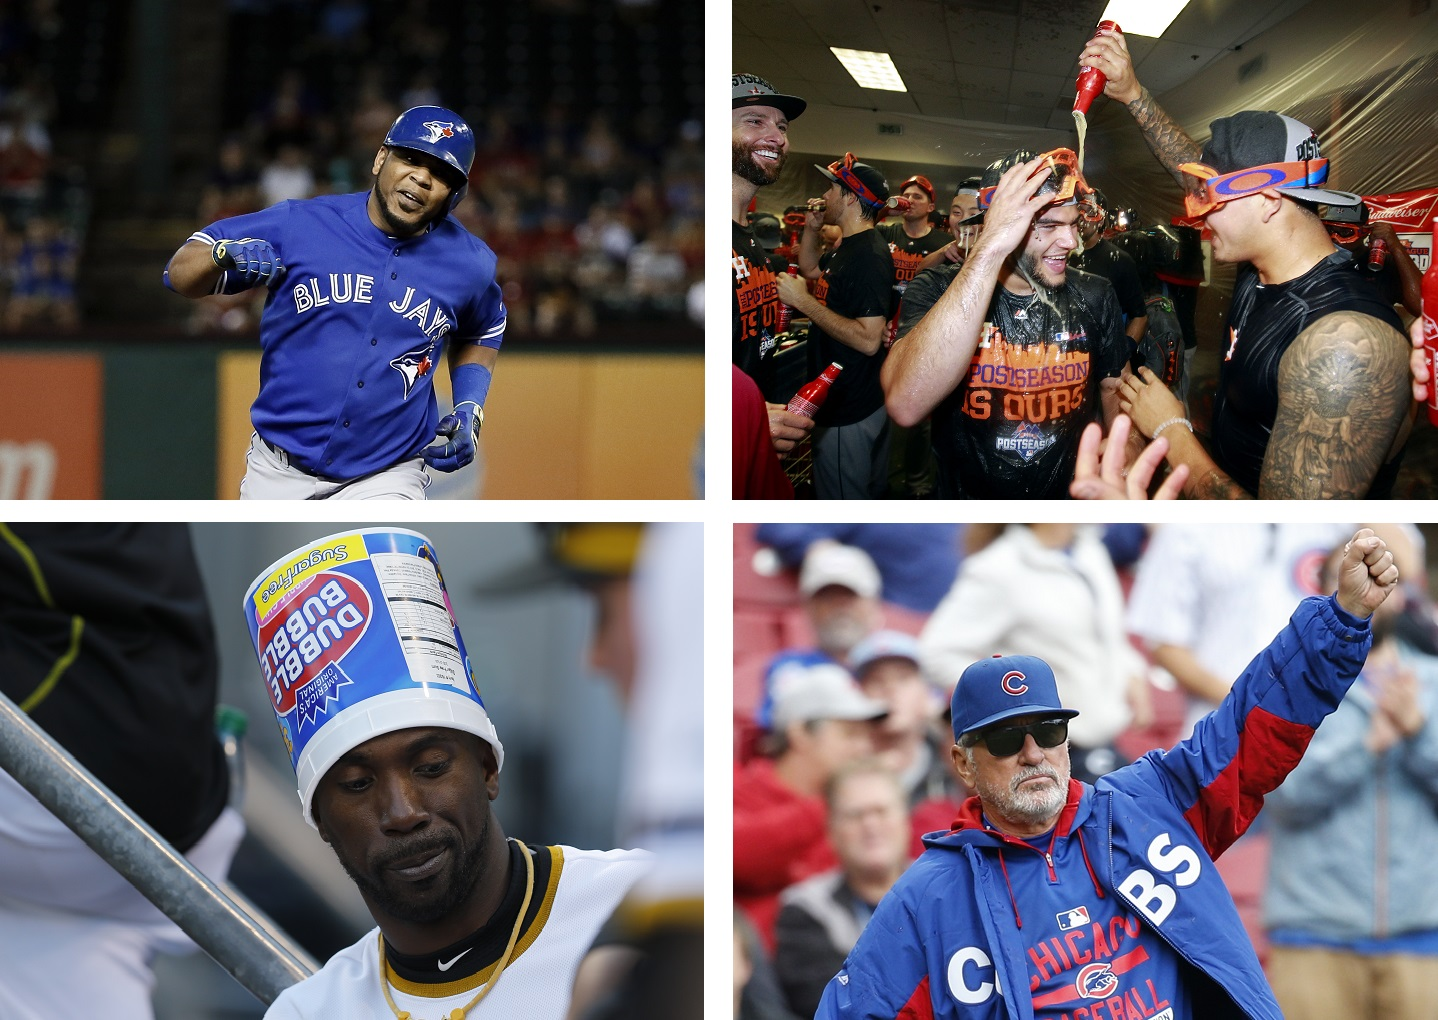 A Nationals fan's rooting guide to the MLB postseason